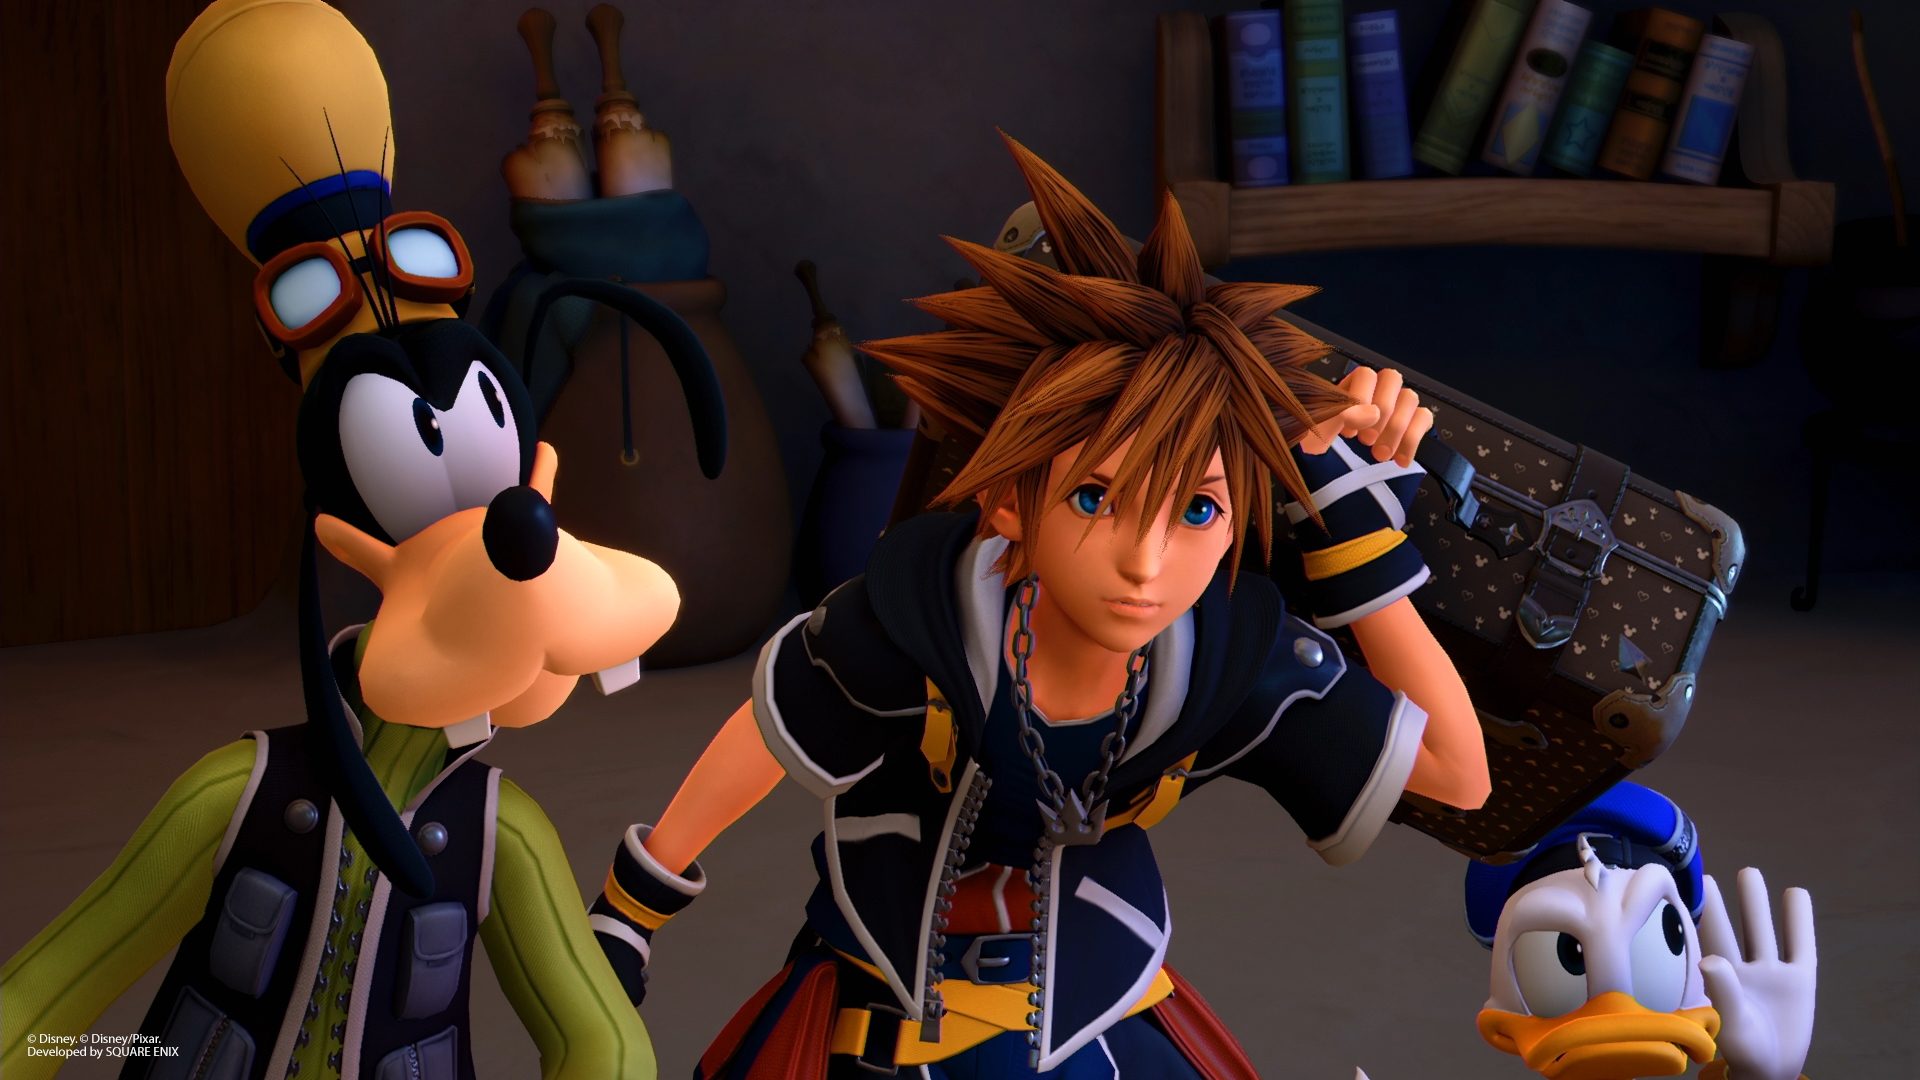 Sora is joined by Donald Duck and Goofy in Kingdom Hearts 3